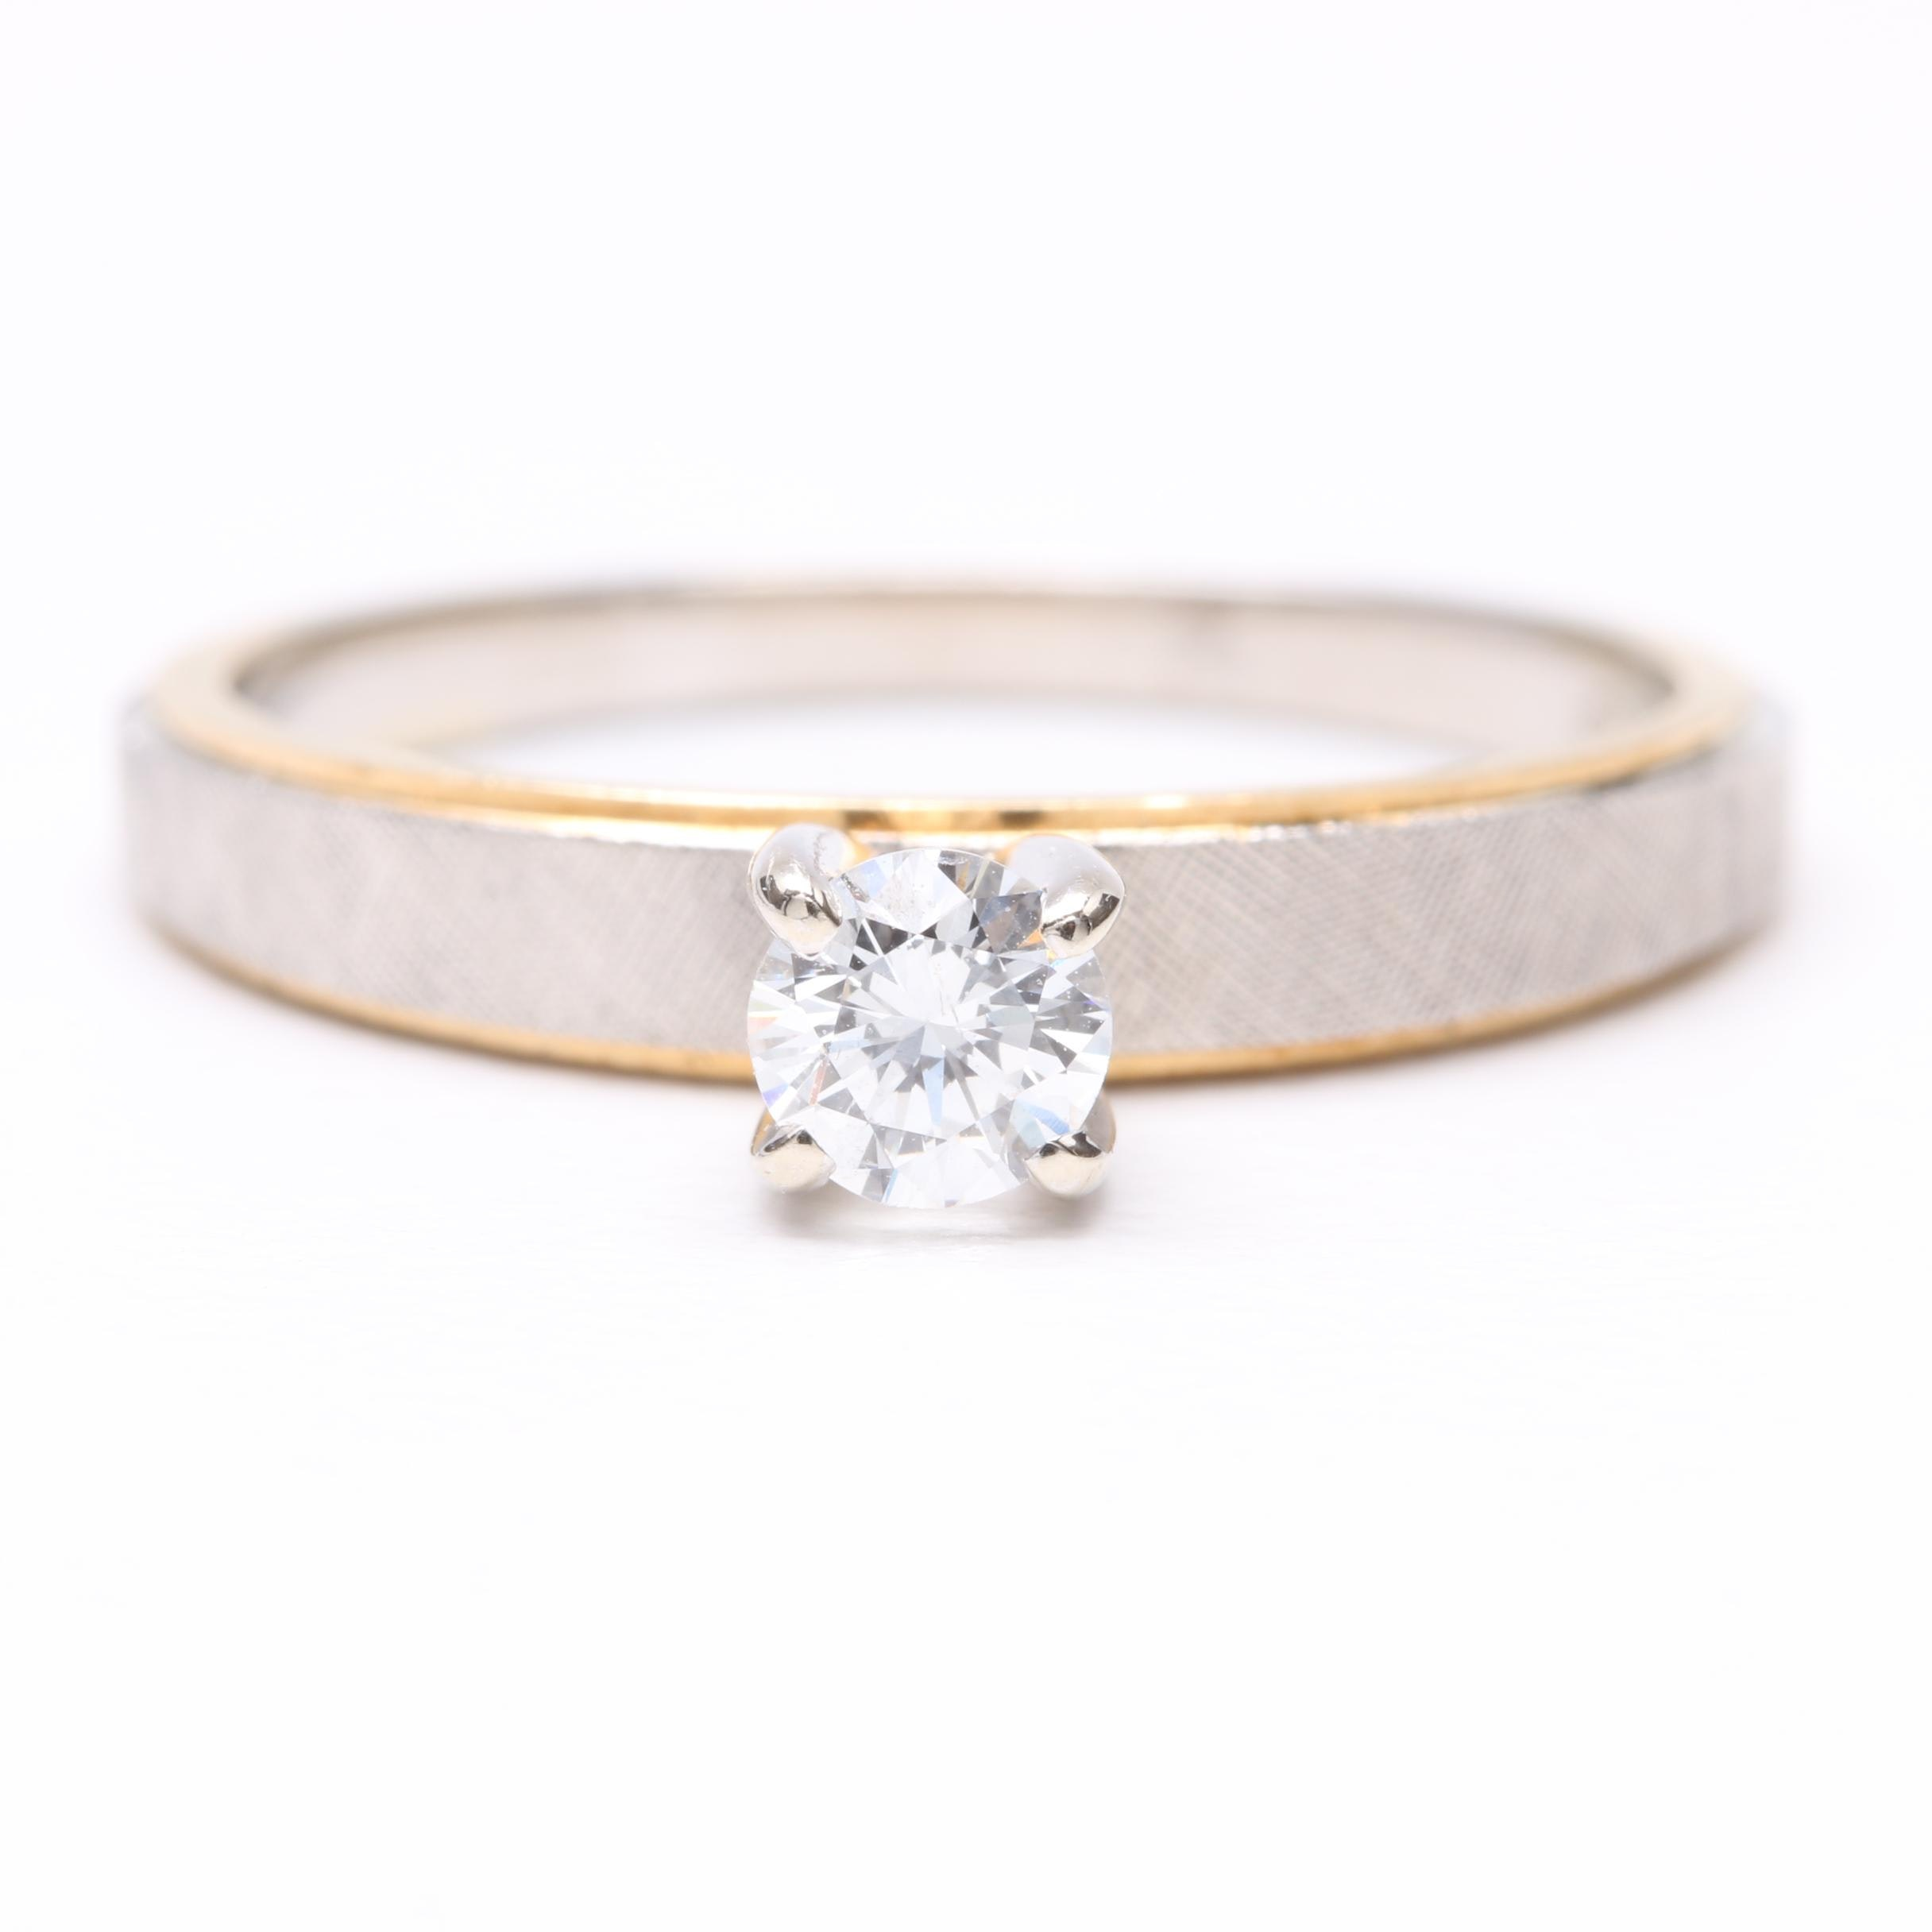 14K White Gold Diamond Solitaire Ring with Yellow Gold Accents